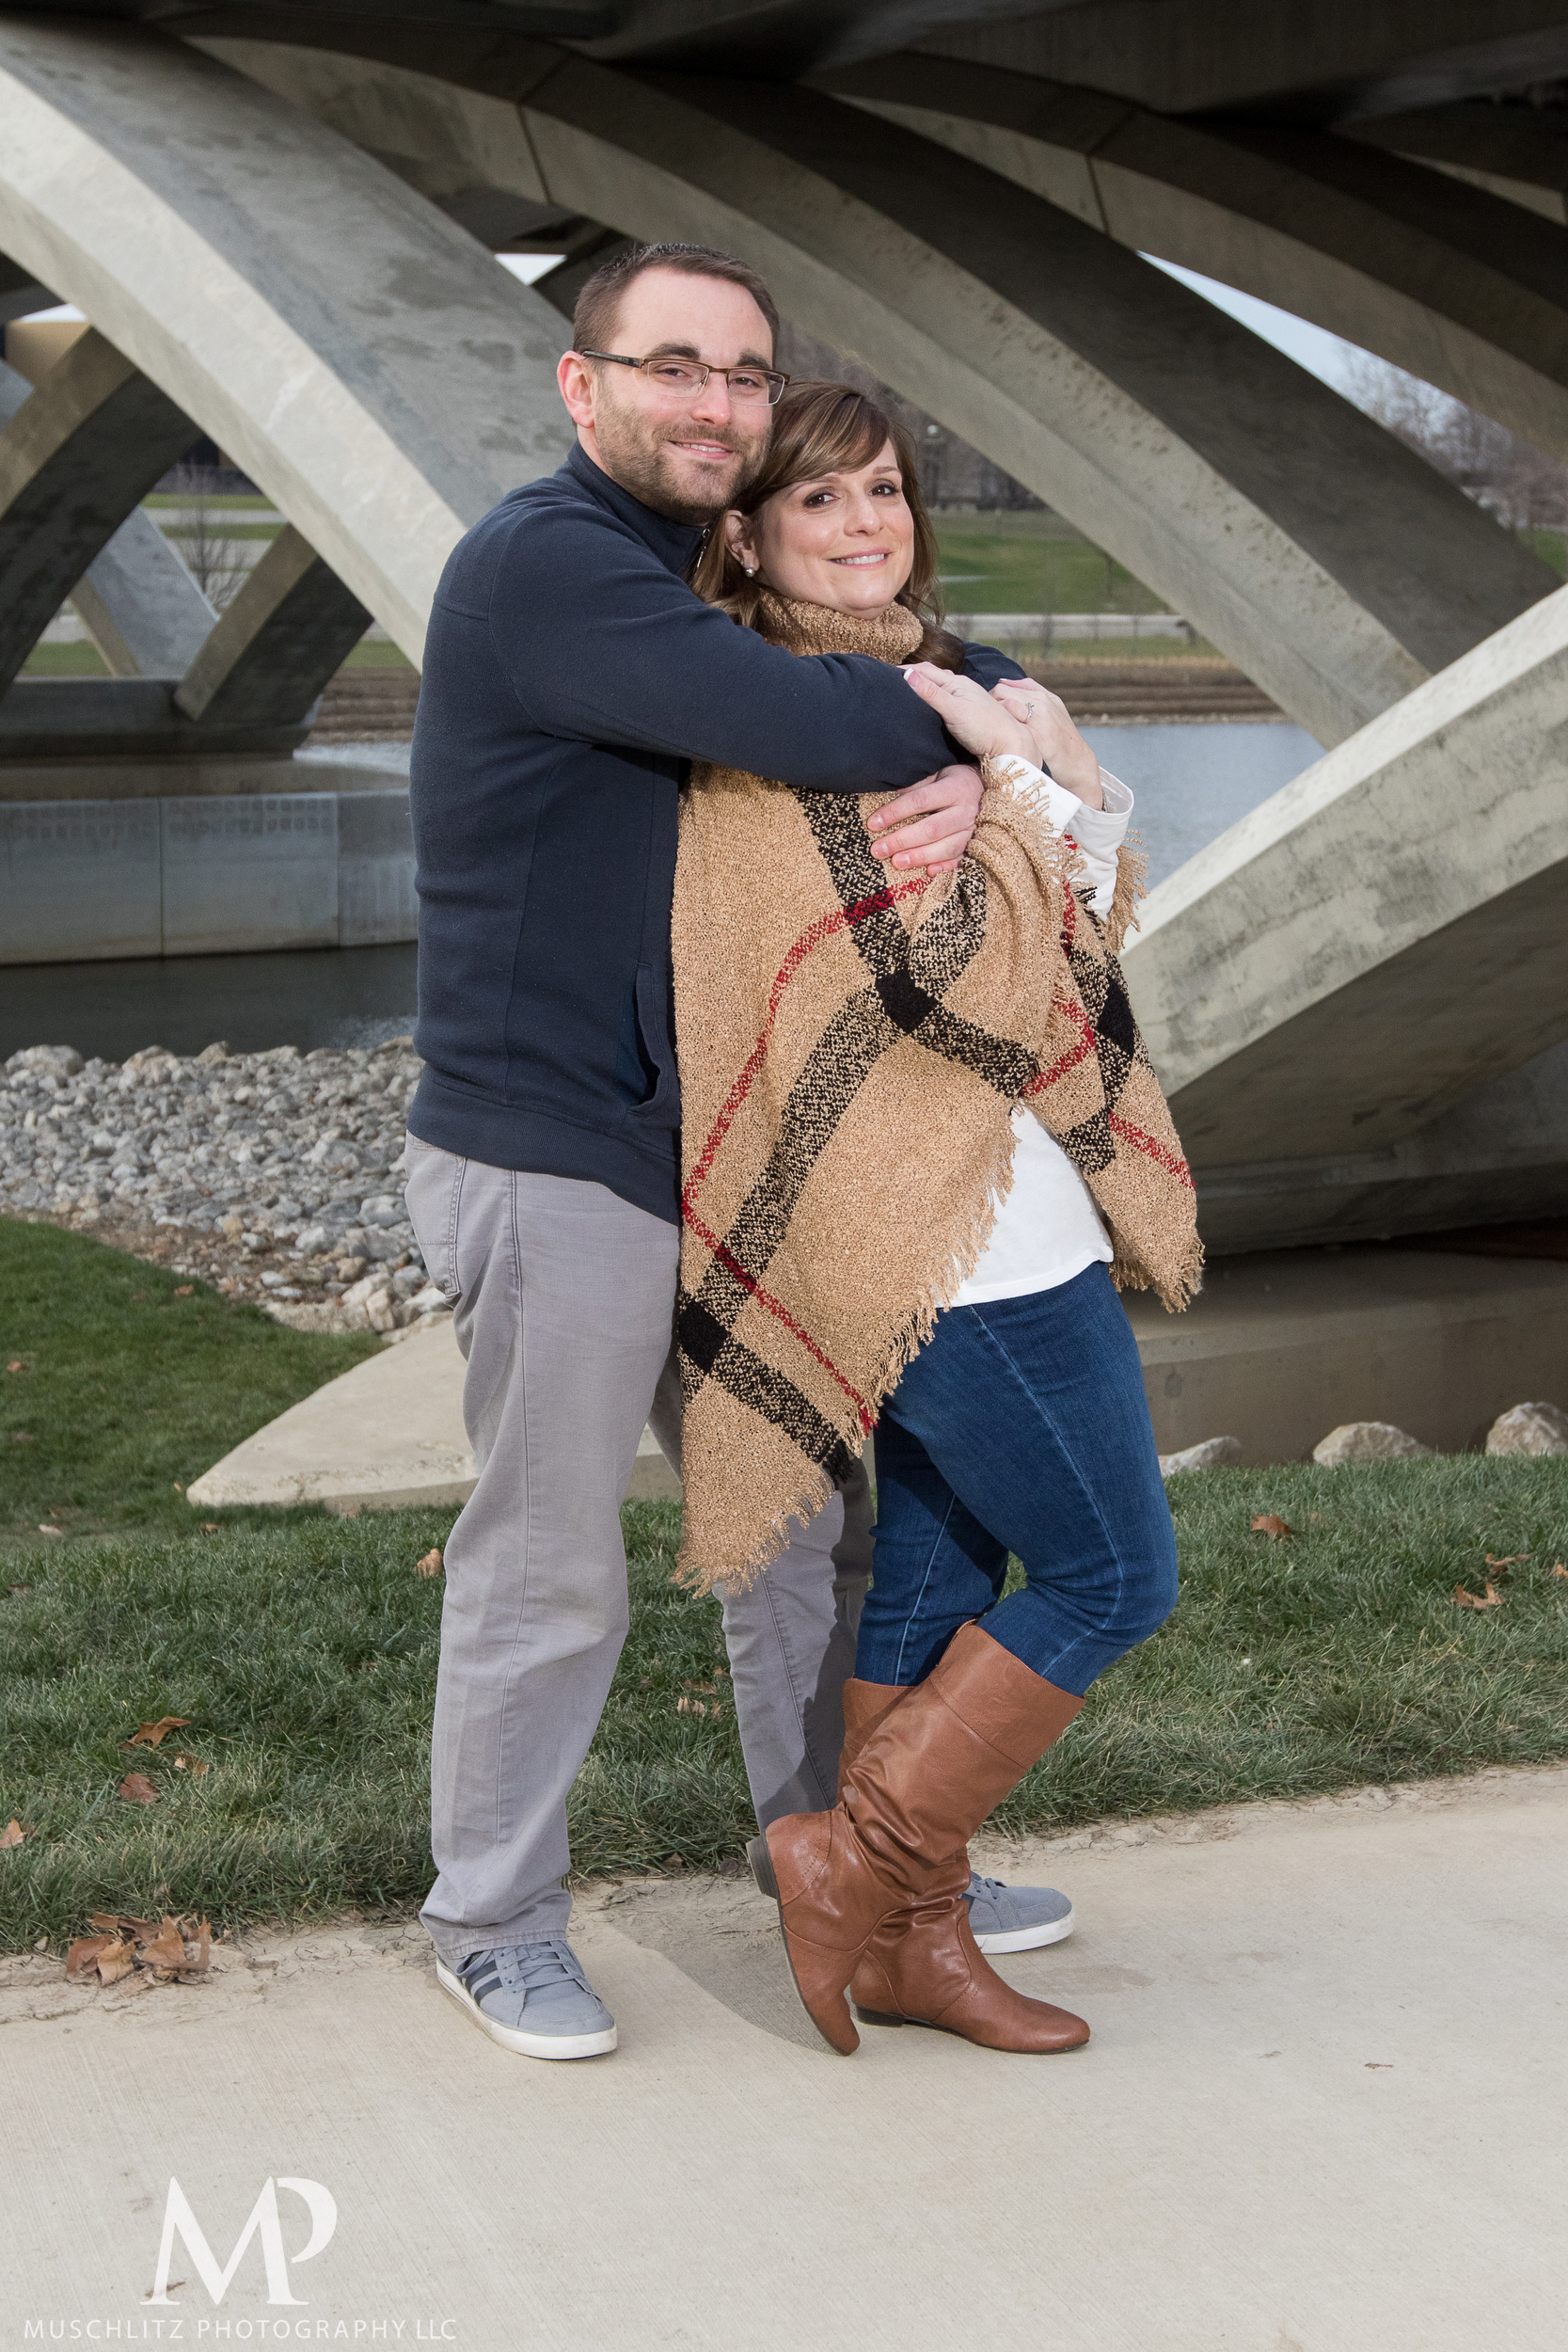 bicentennial-park-engagement-session-holiday-portraits-columbus-ohio-010.JPG